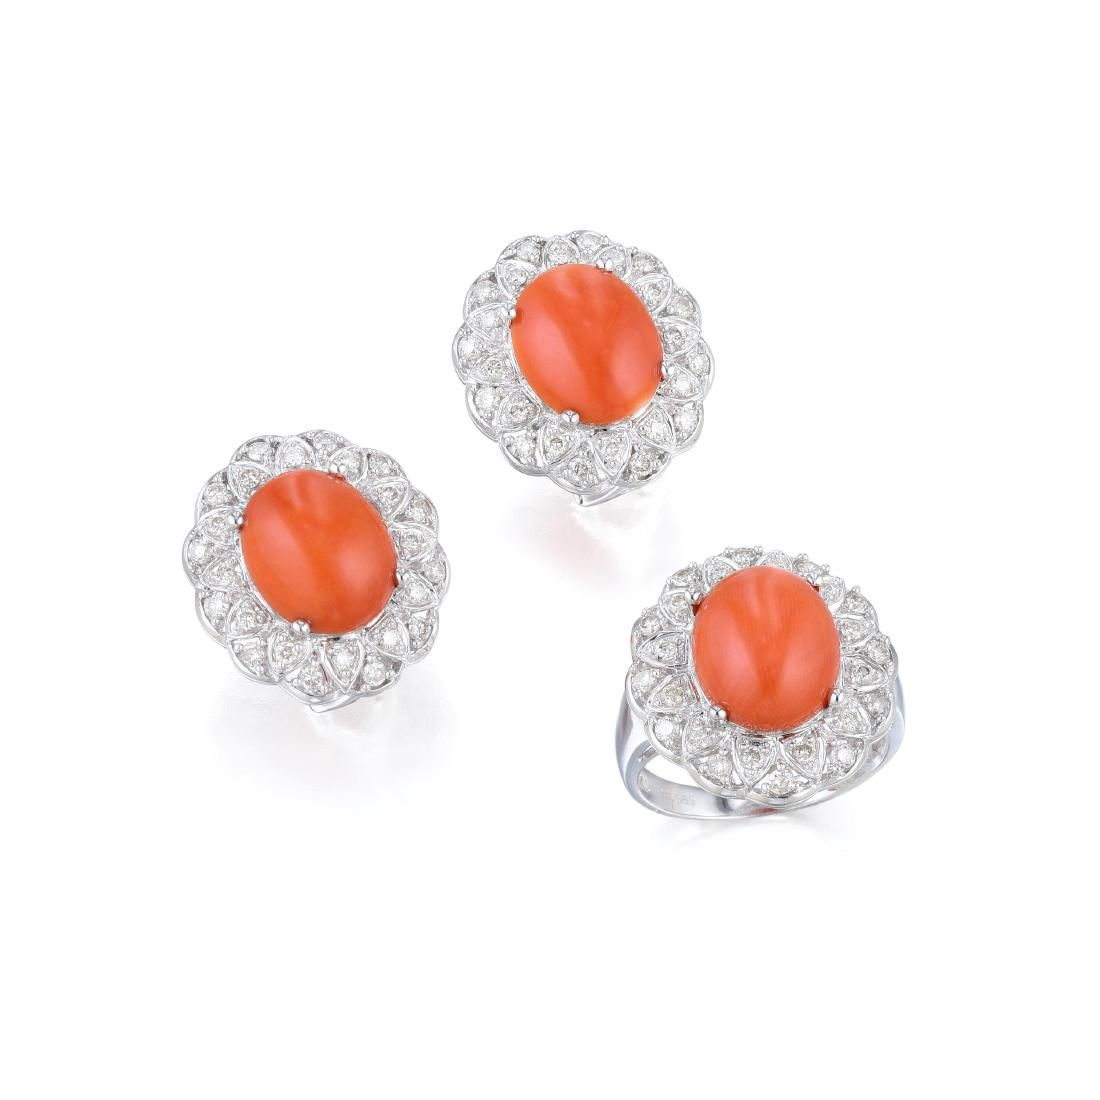 A Set of Coral and Diamond Earrings and Ring